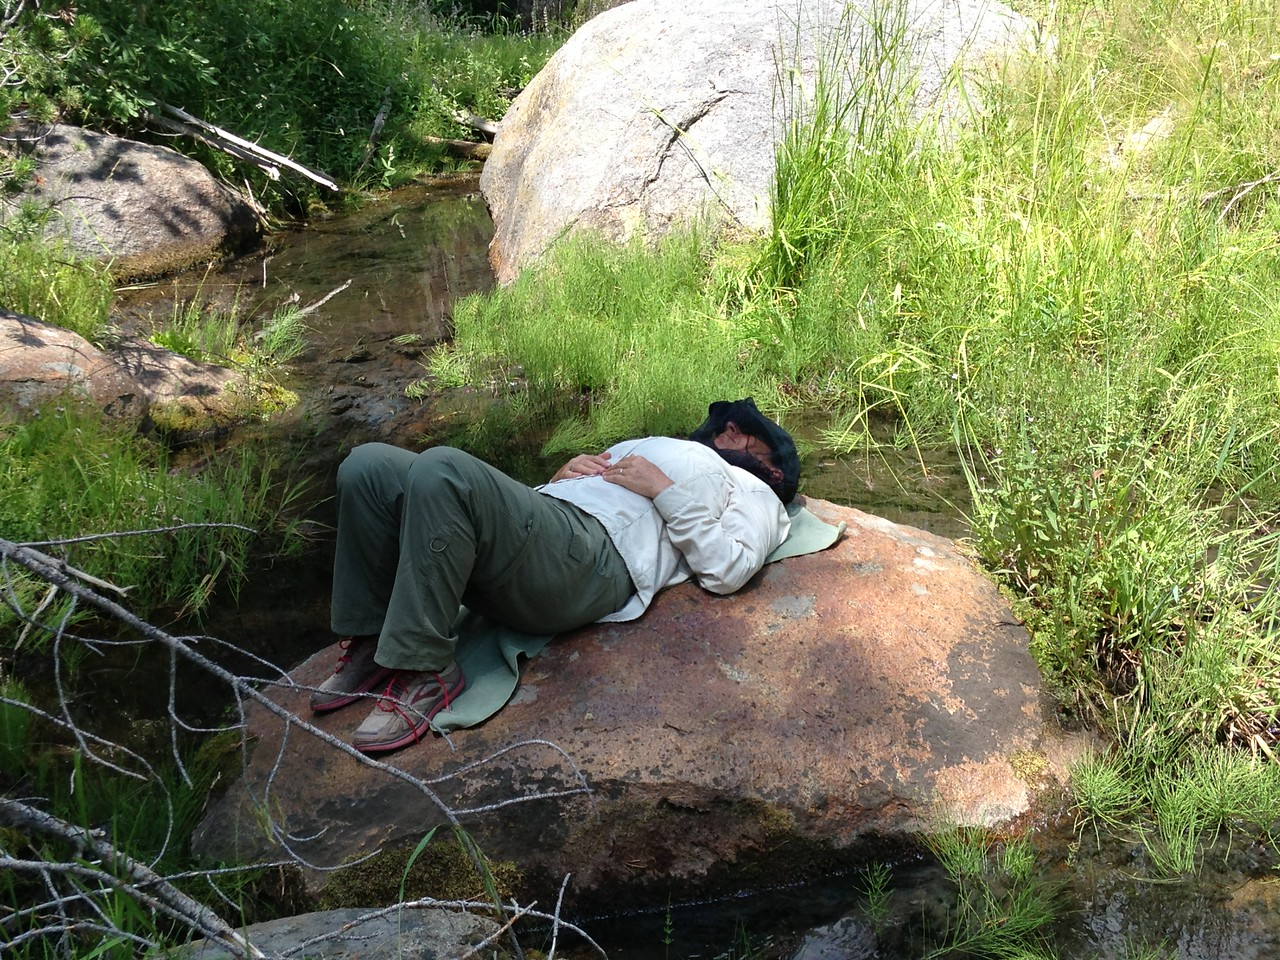 Michèle's solution to the crawling bugs - a nap-spot on a boulder in the nearby small stream. She snoozed quite contentedly for 20-30 minutes while I sat nearby.